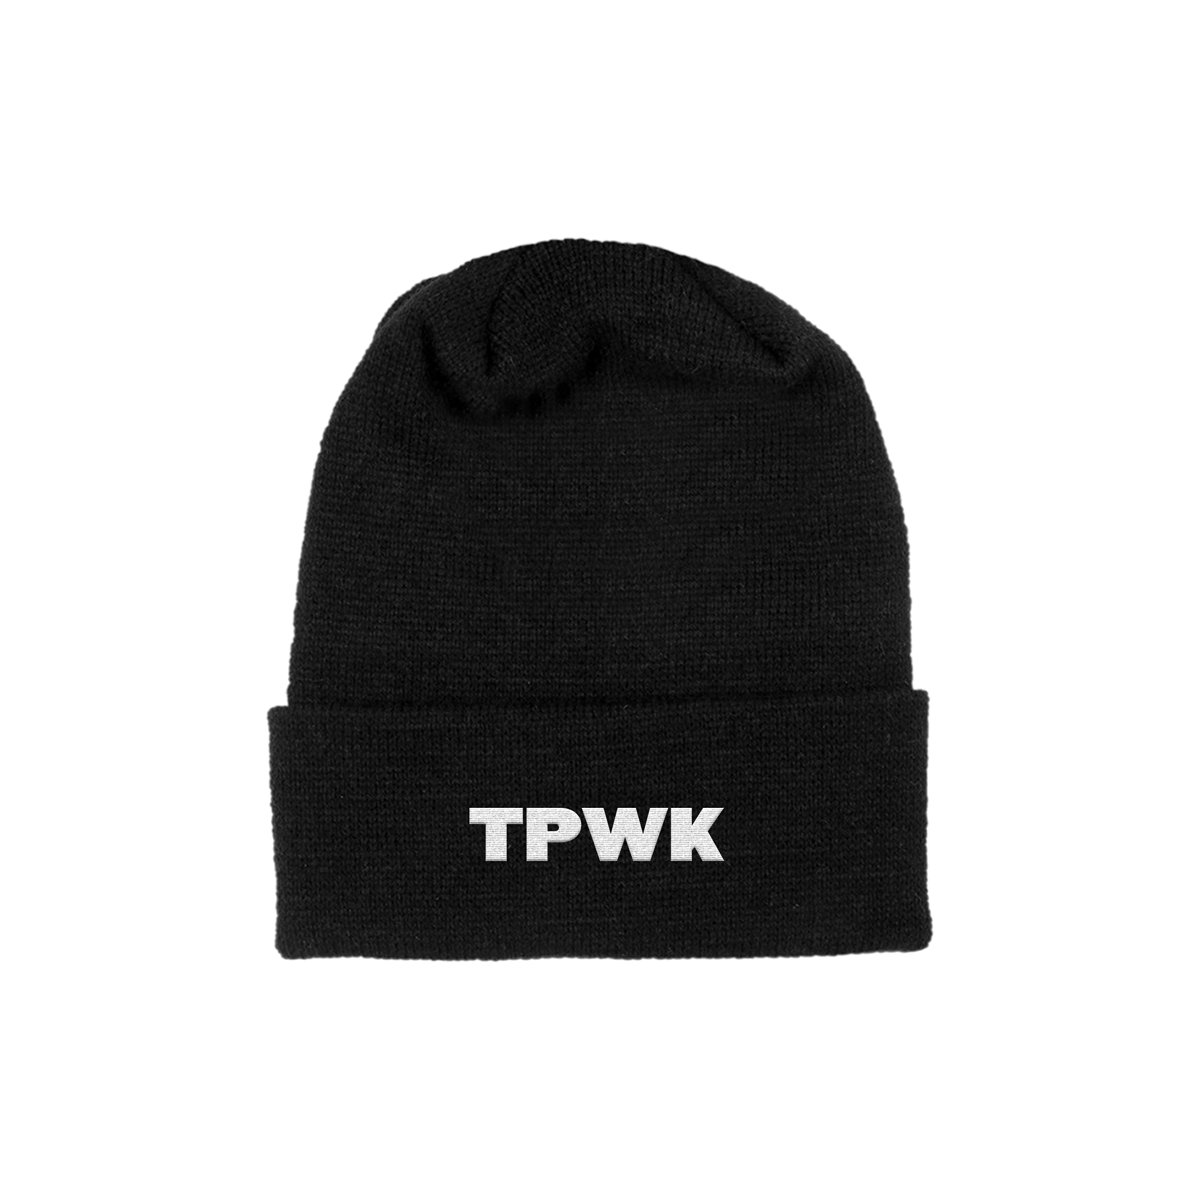 Treat People With Kindness Cuff Beanie + Digital Download